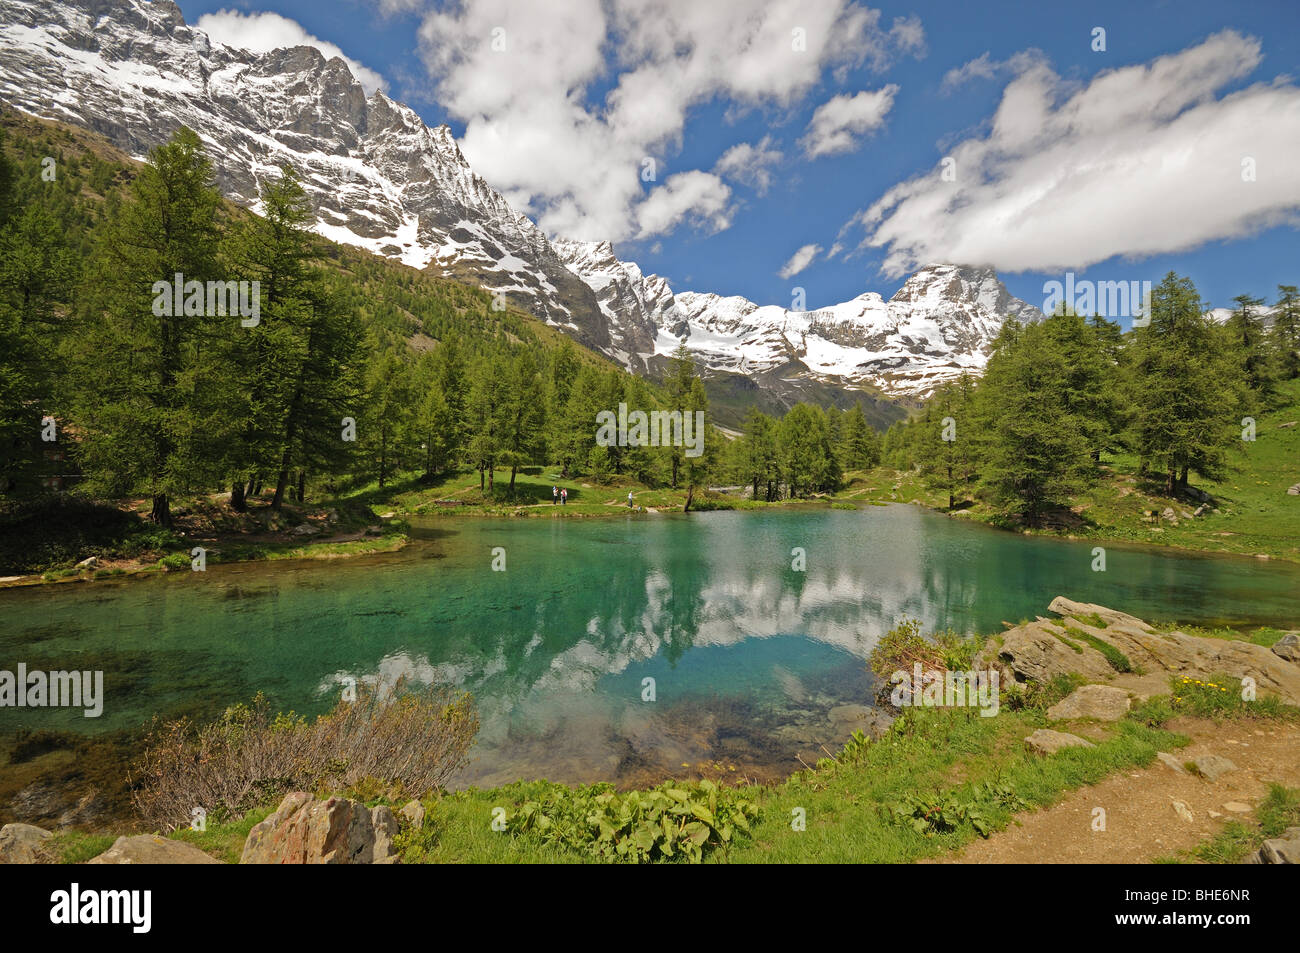 Il Lago Blu or the Blue Lake in Valtournenche Italy with the peak of the Matterhorn or Il Cervino in the background. - Stock Image